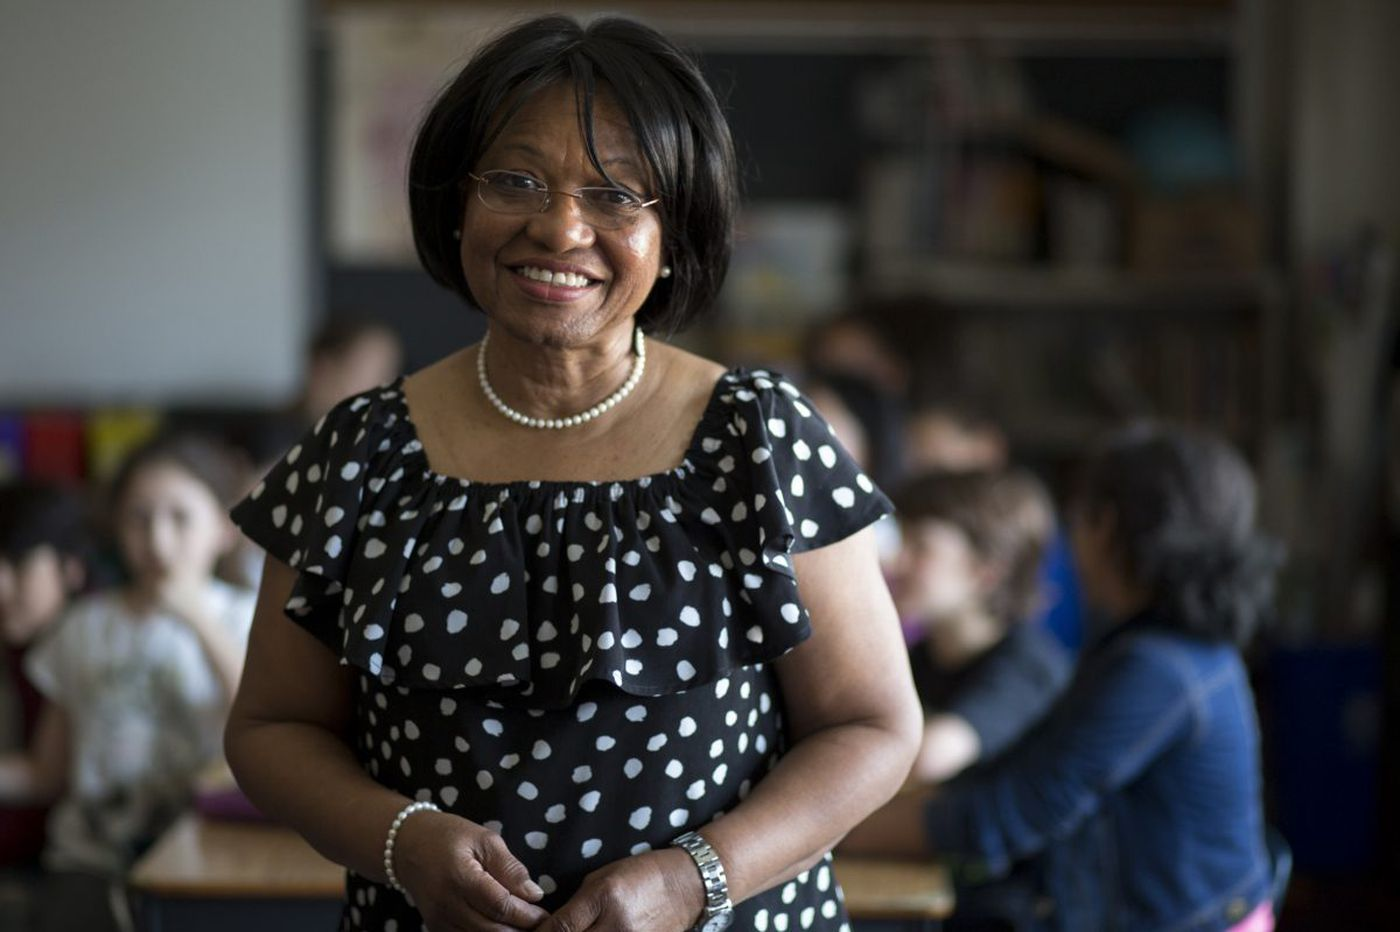 At 71, teaching is her fountain of youth